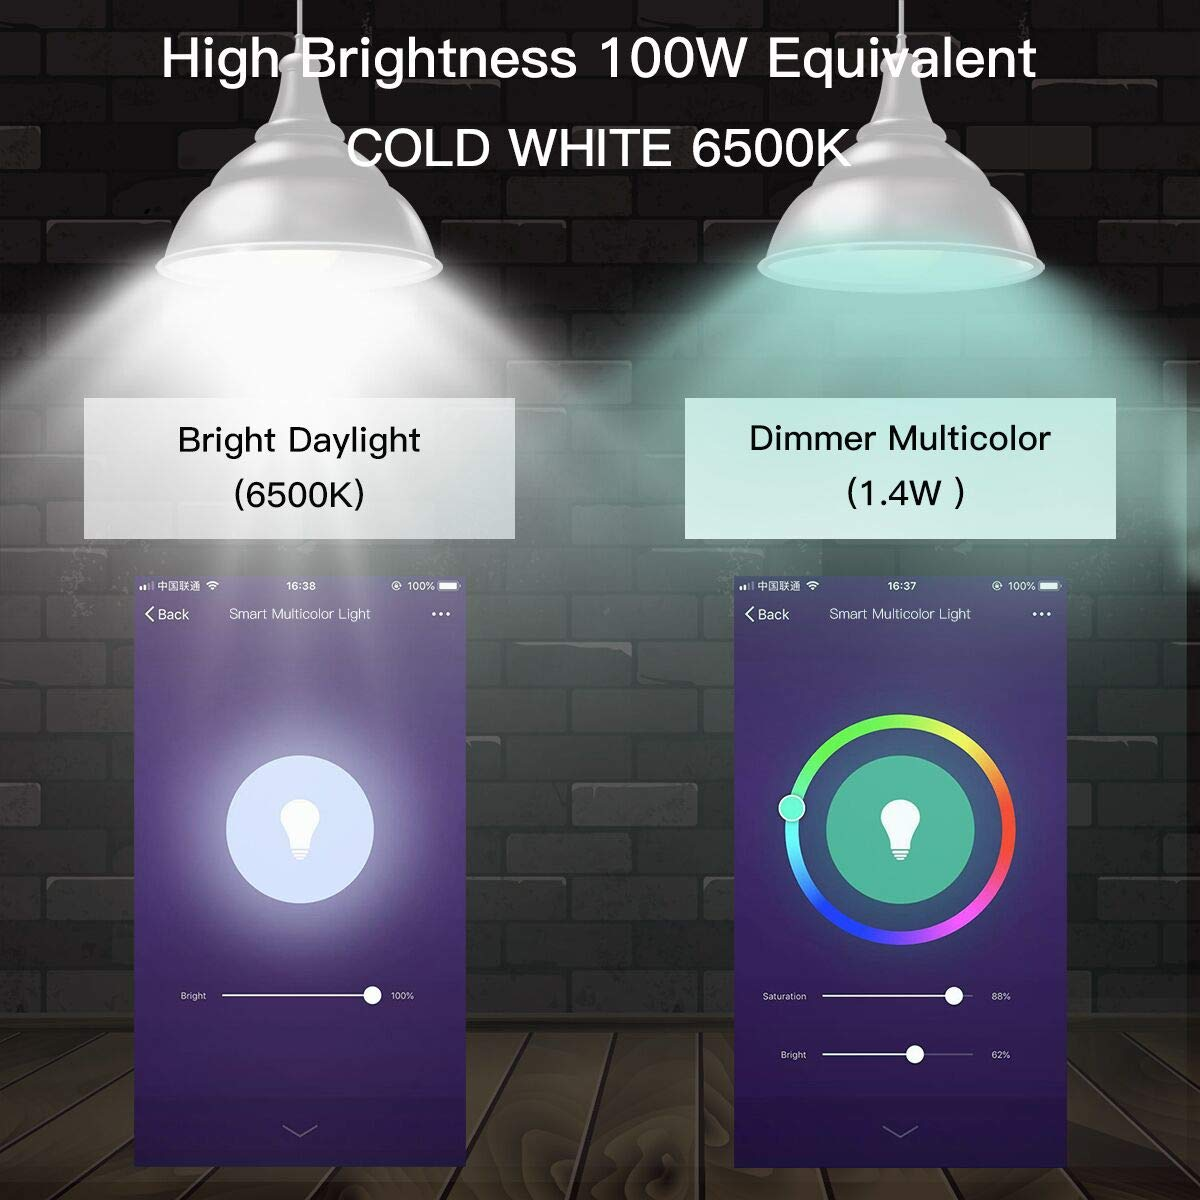 Manzoku 100w equiv multicolor WiFi smart LED bulb review